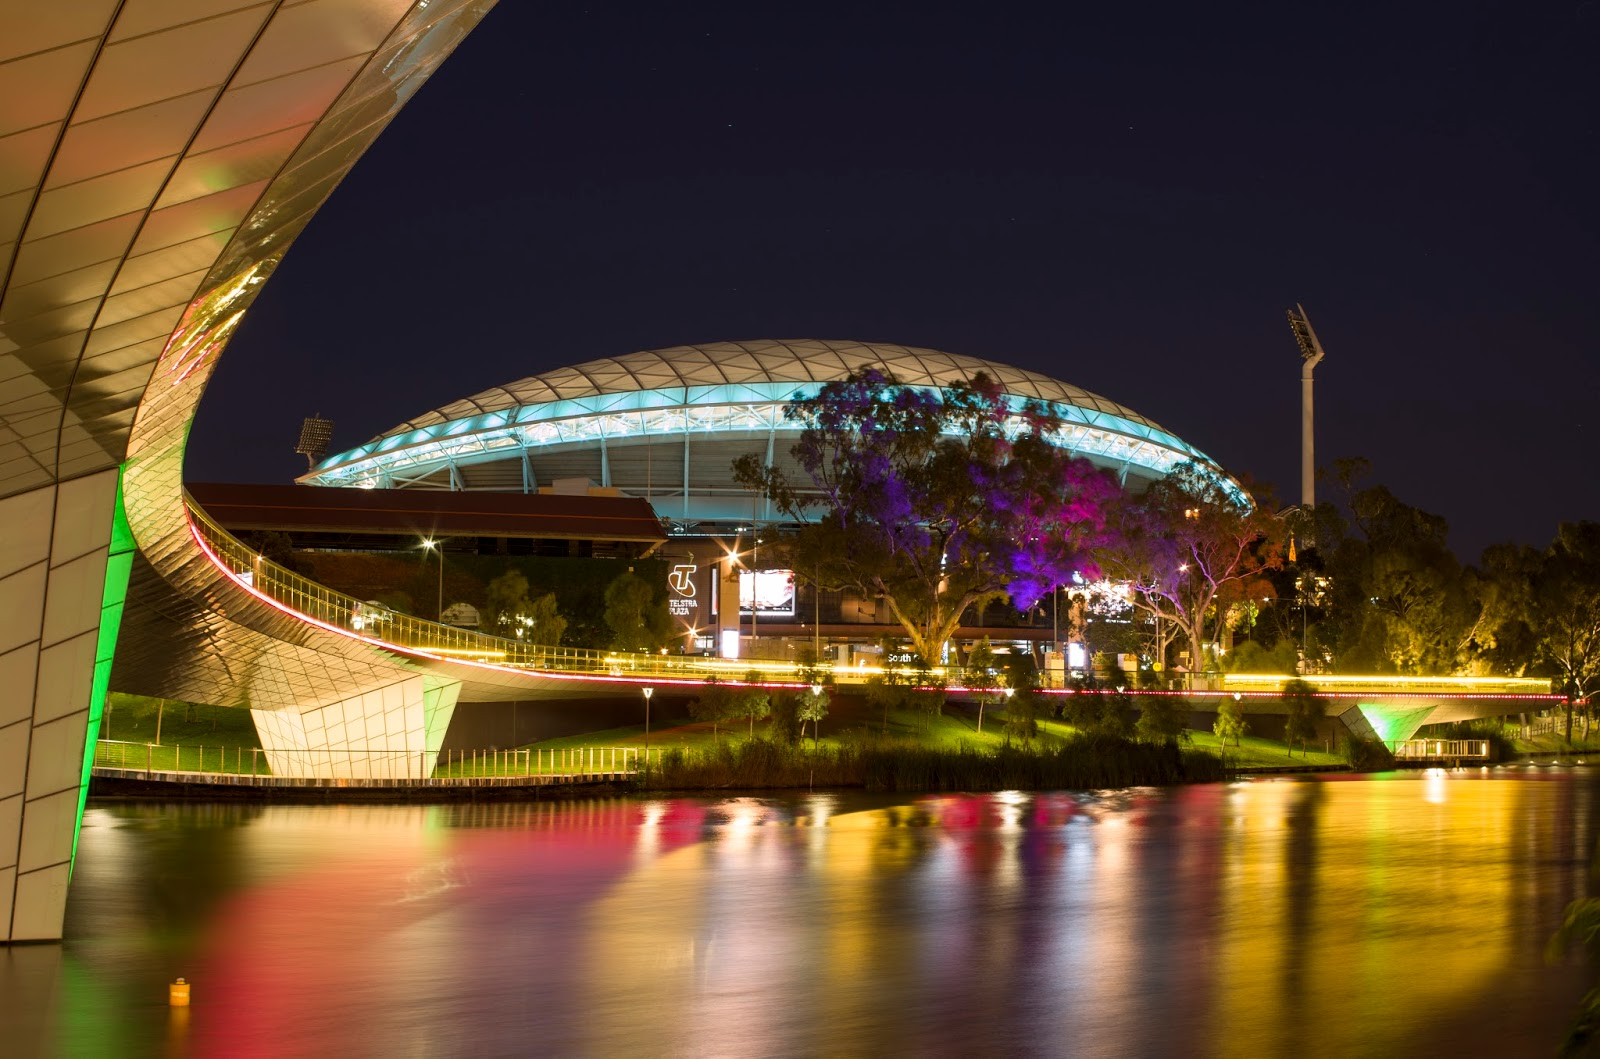 New adelaide oval pictures APHRODITE - Greek Goddess of Love Beauty (Roman)